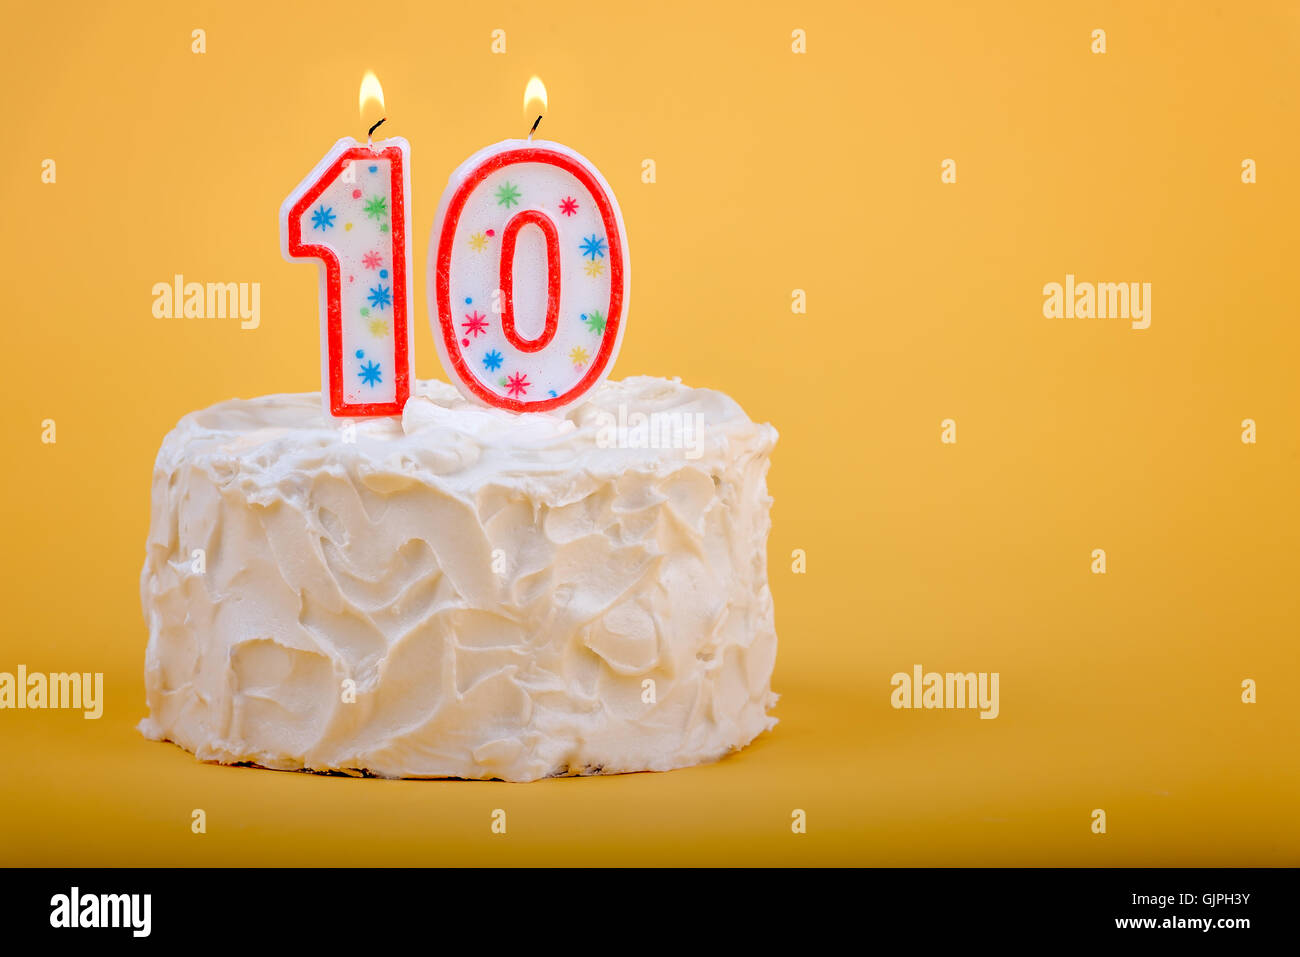 Miraculous 10 Candles On A Birthday Cake For Tenth Birthday Stock Photo Personalised Birthday Cards Cominlily Jamesorg